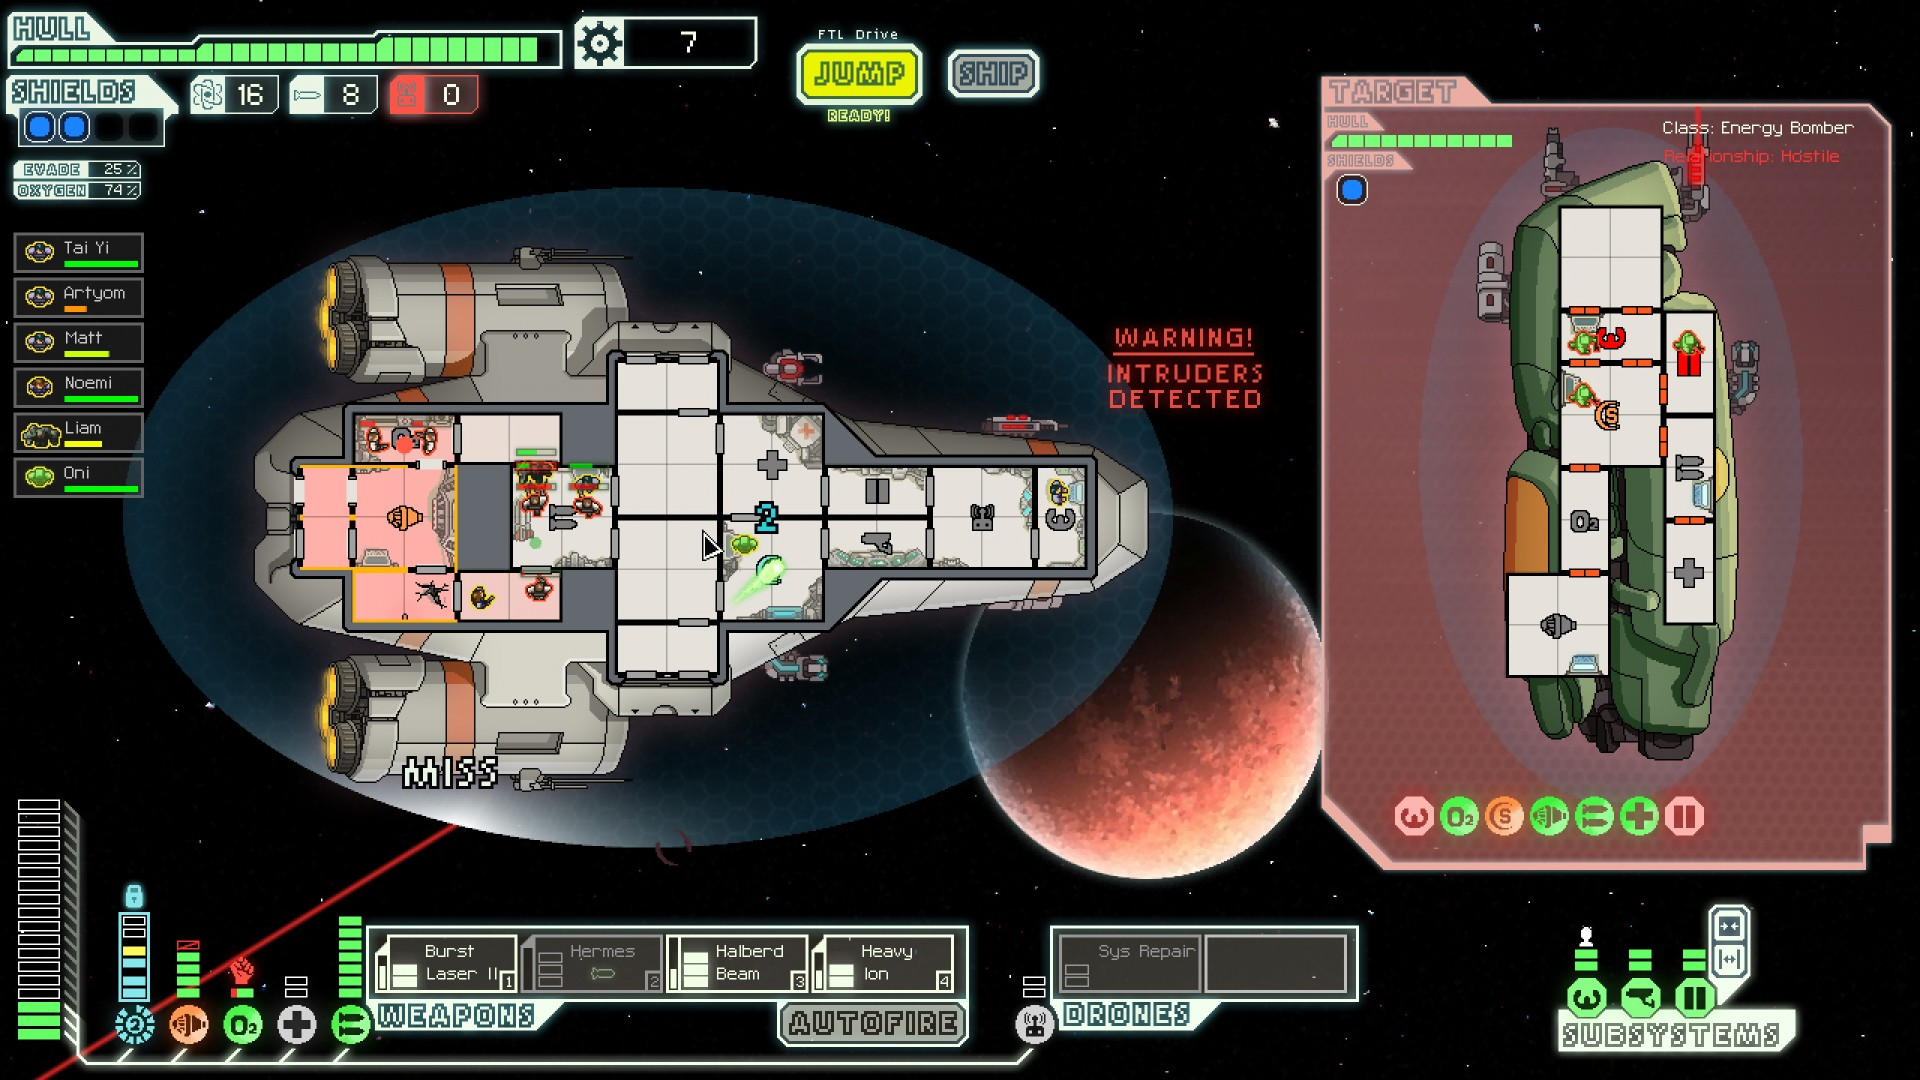 FTL - Best Space Games 2020